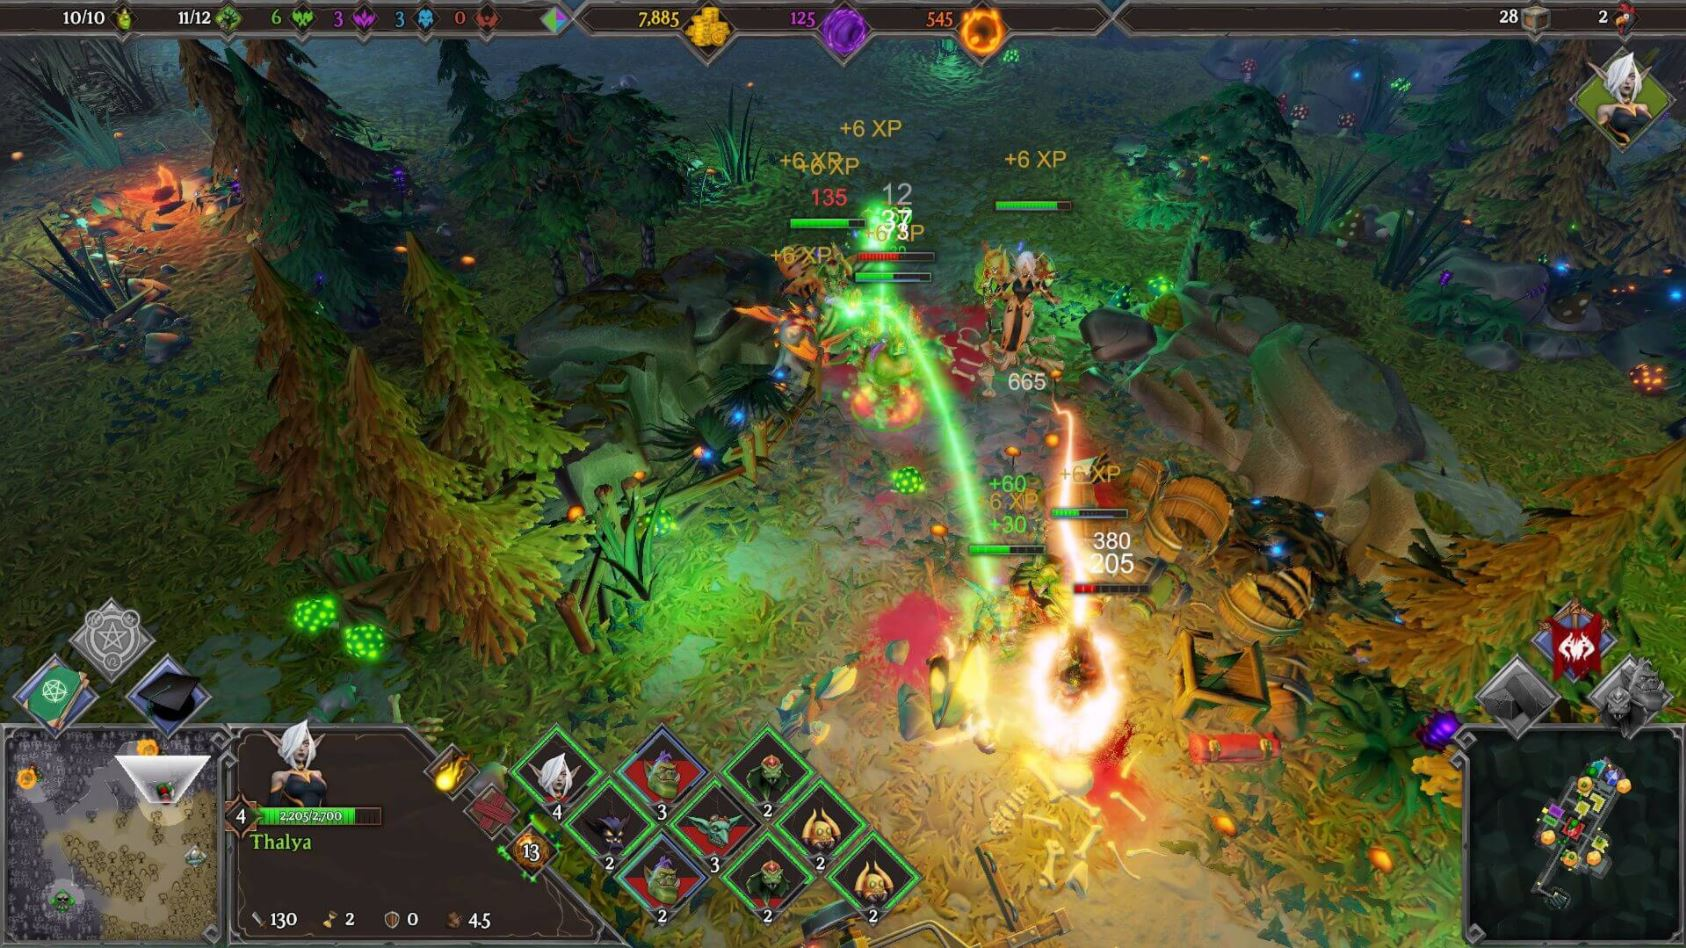 Dungeons 3 sur Steam promo dungeons 2 screen146